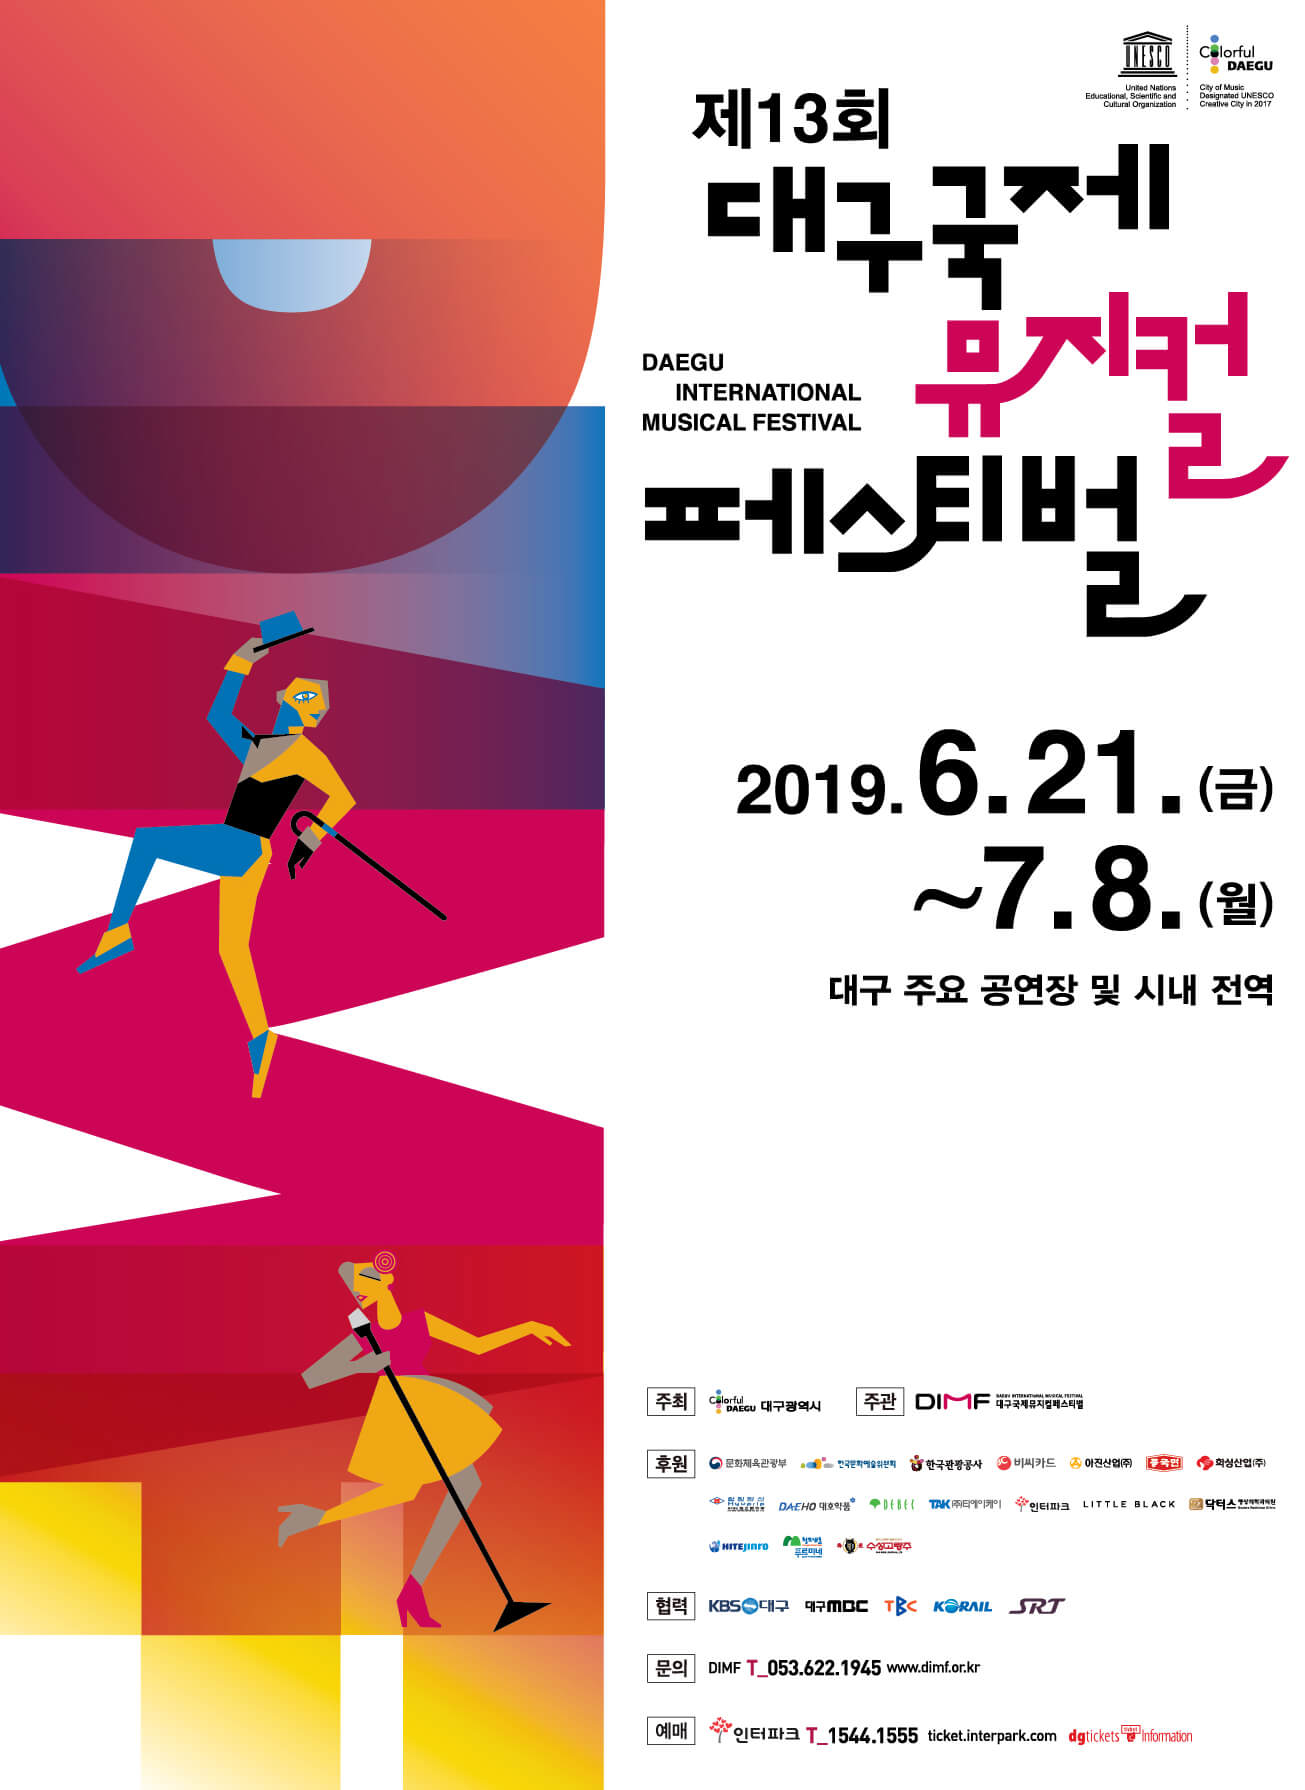 Daegu International Music Festival 2019